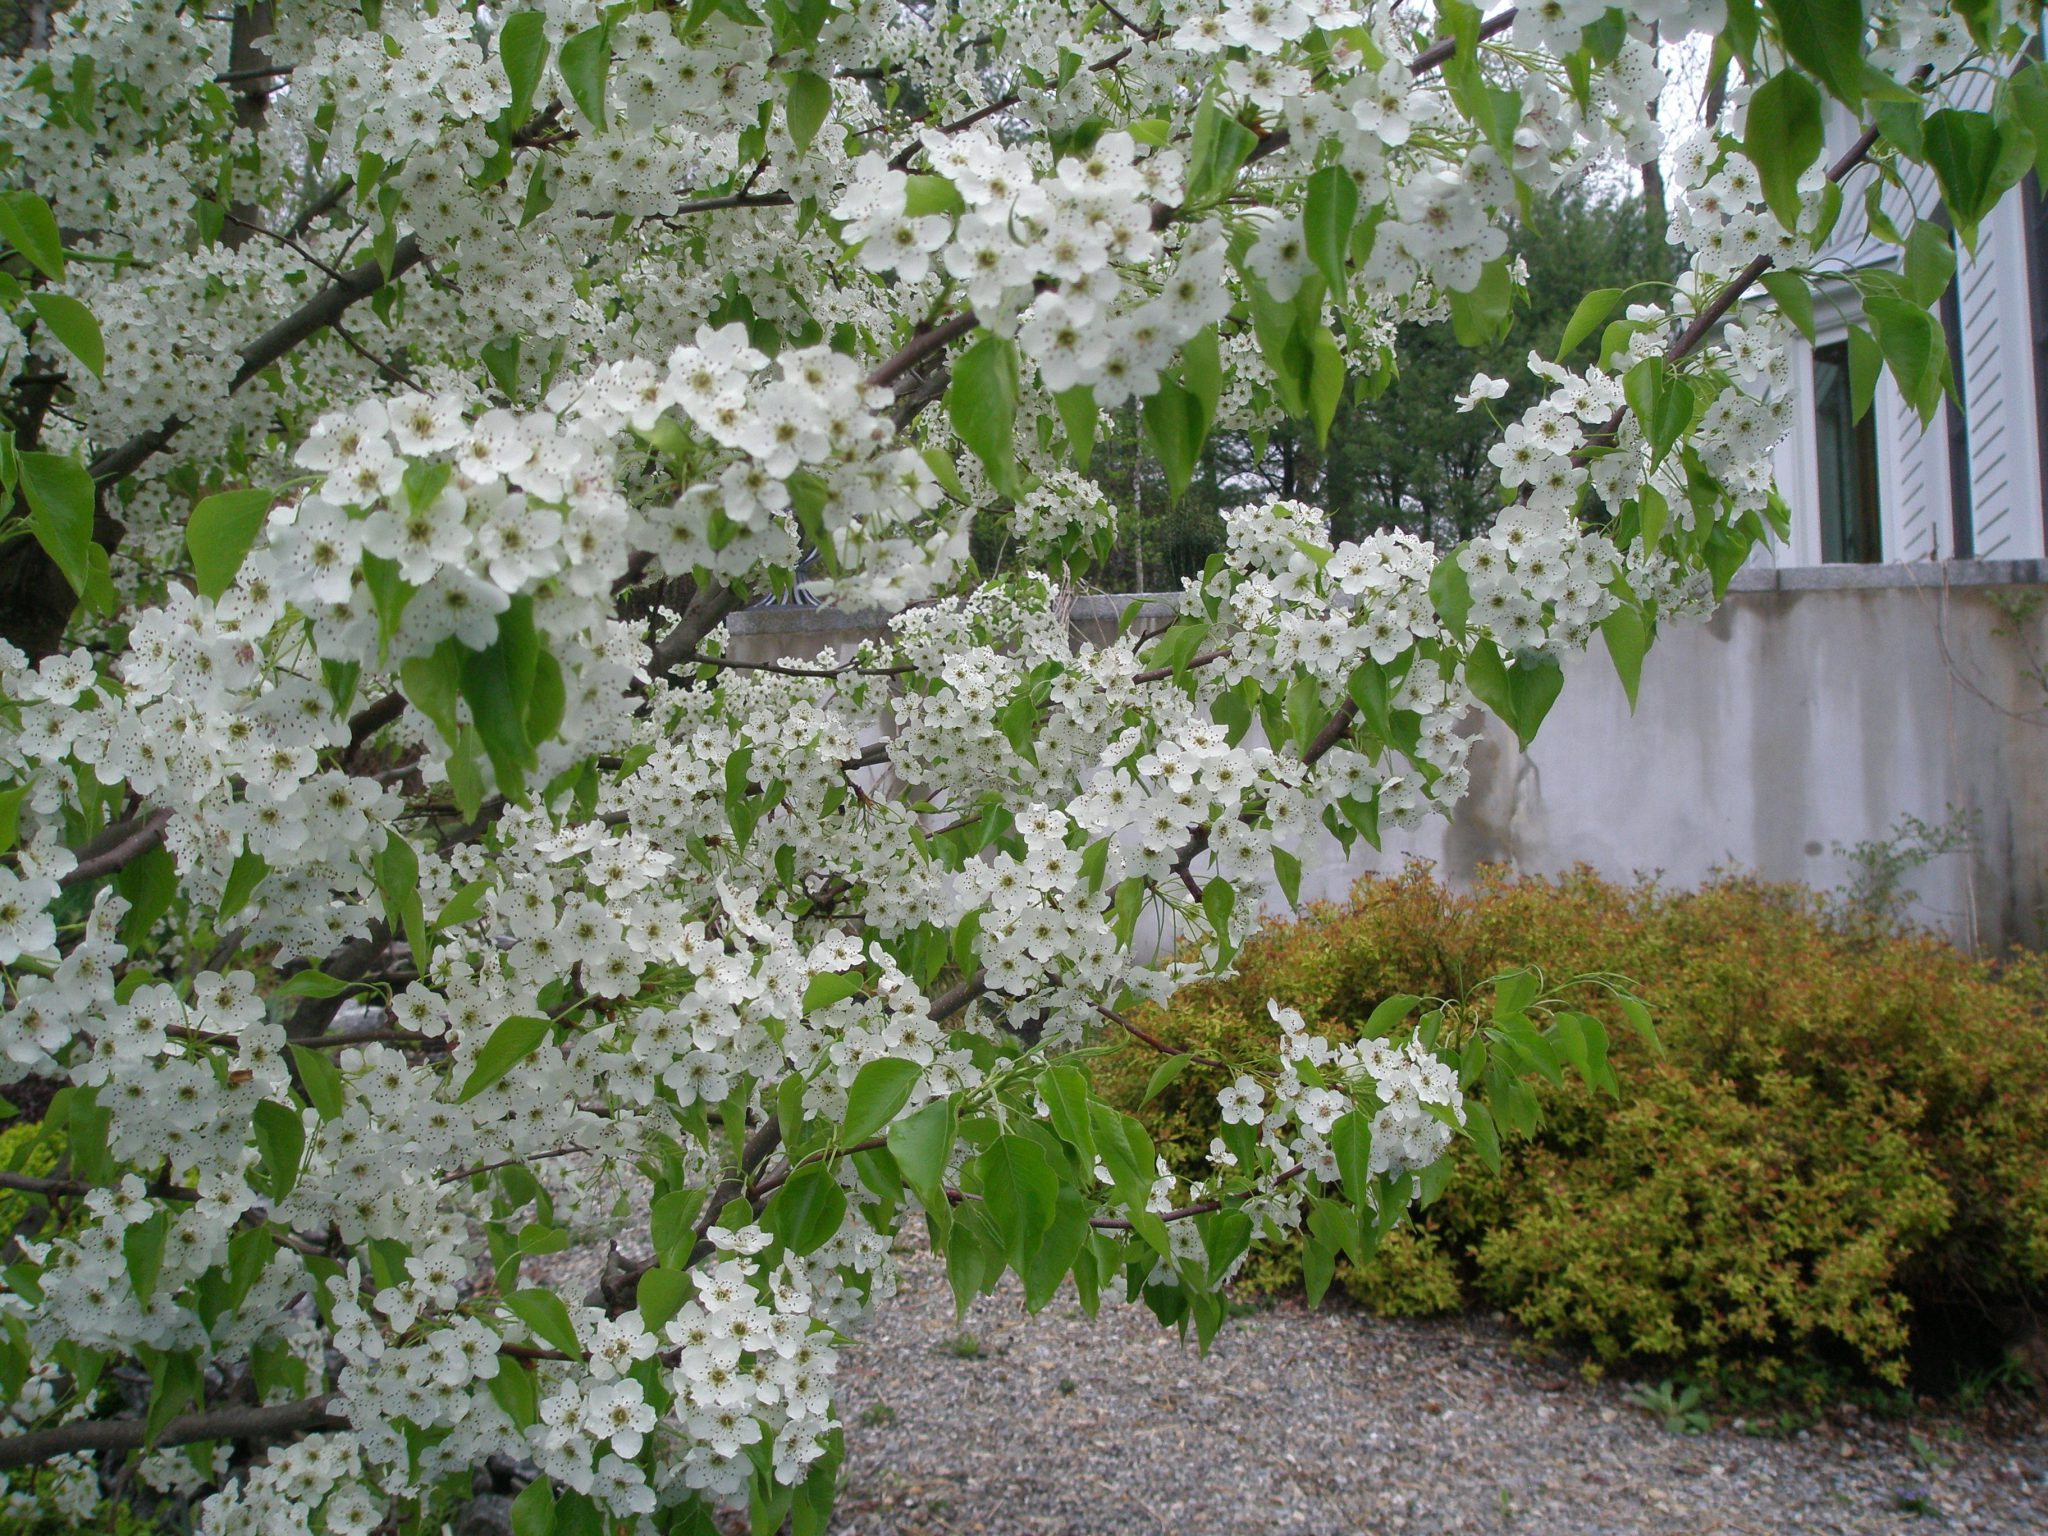 My Ornamental Pear tree in beautiful, blowzy-bloom.